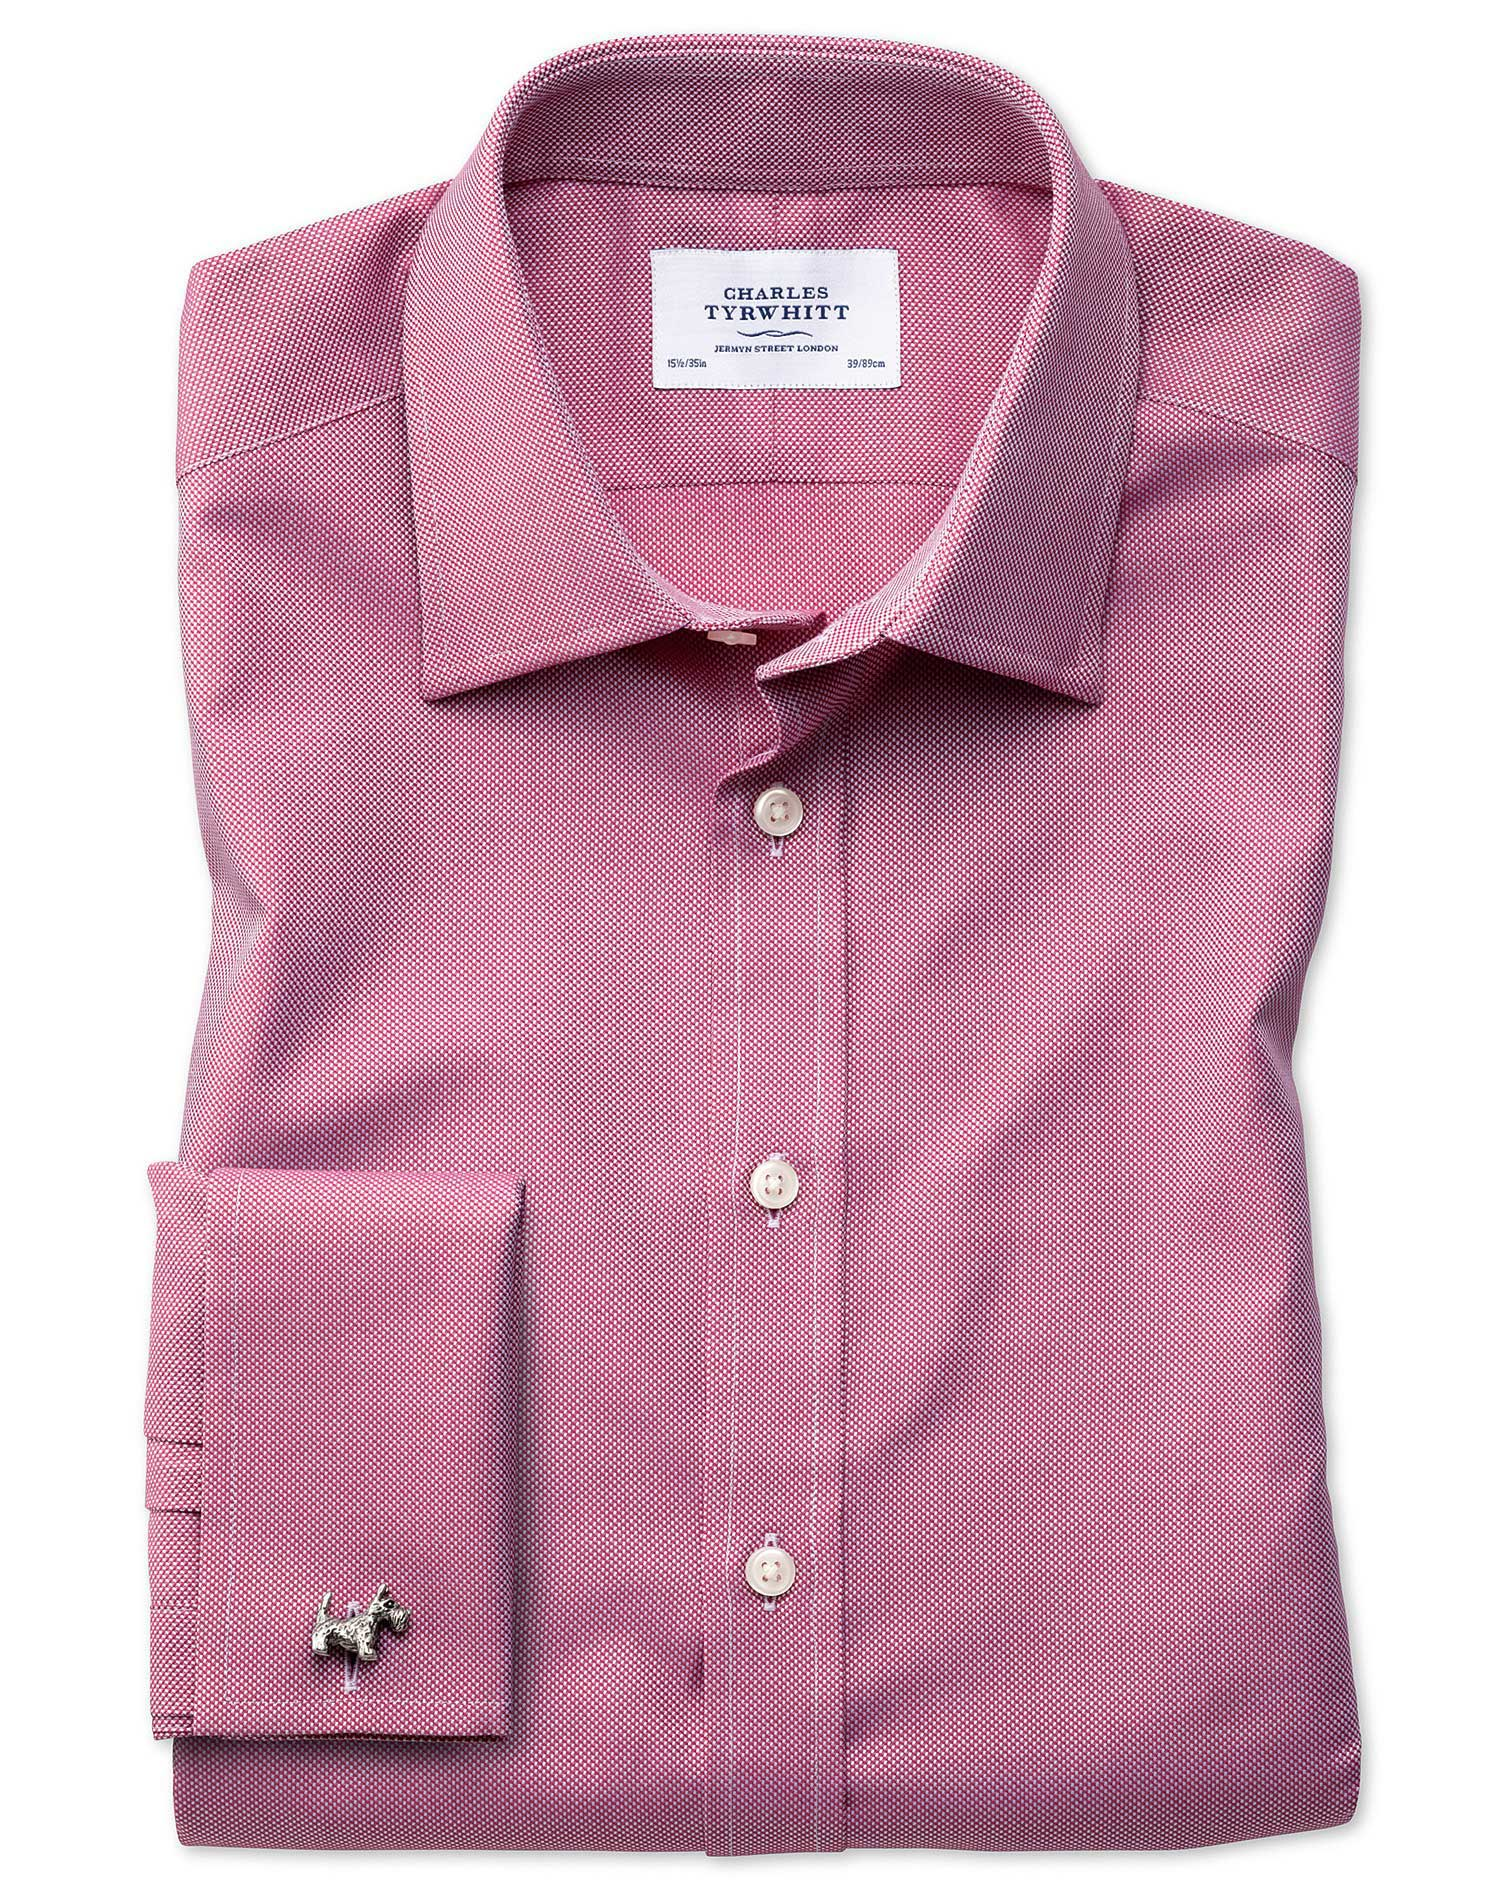 Classic Fit Egyptian Cotton Royal Oxford Magenta Formal Shirt Single Cuff Size 17/34 by Charles Tyrw